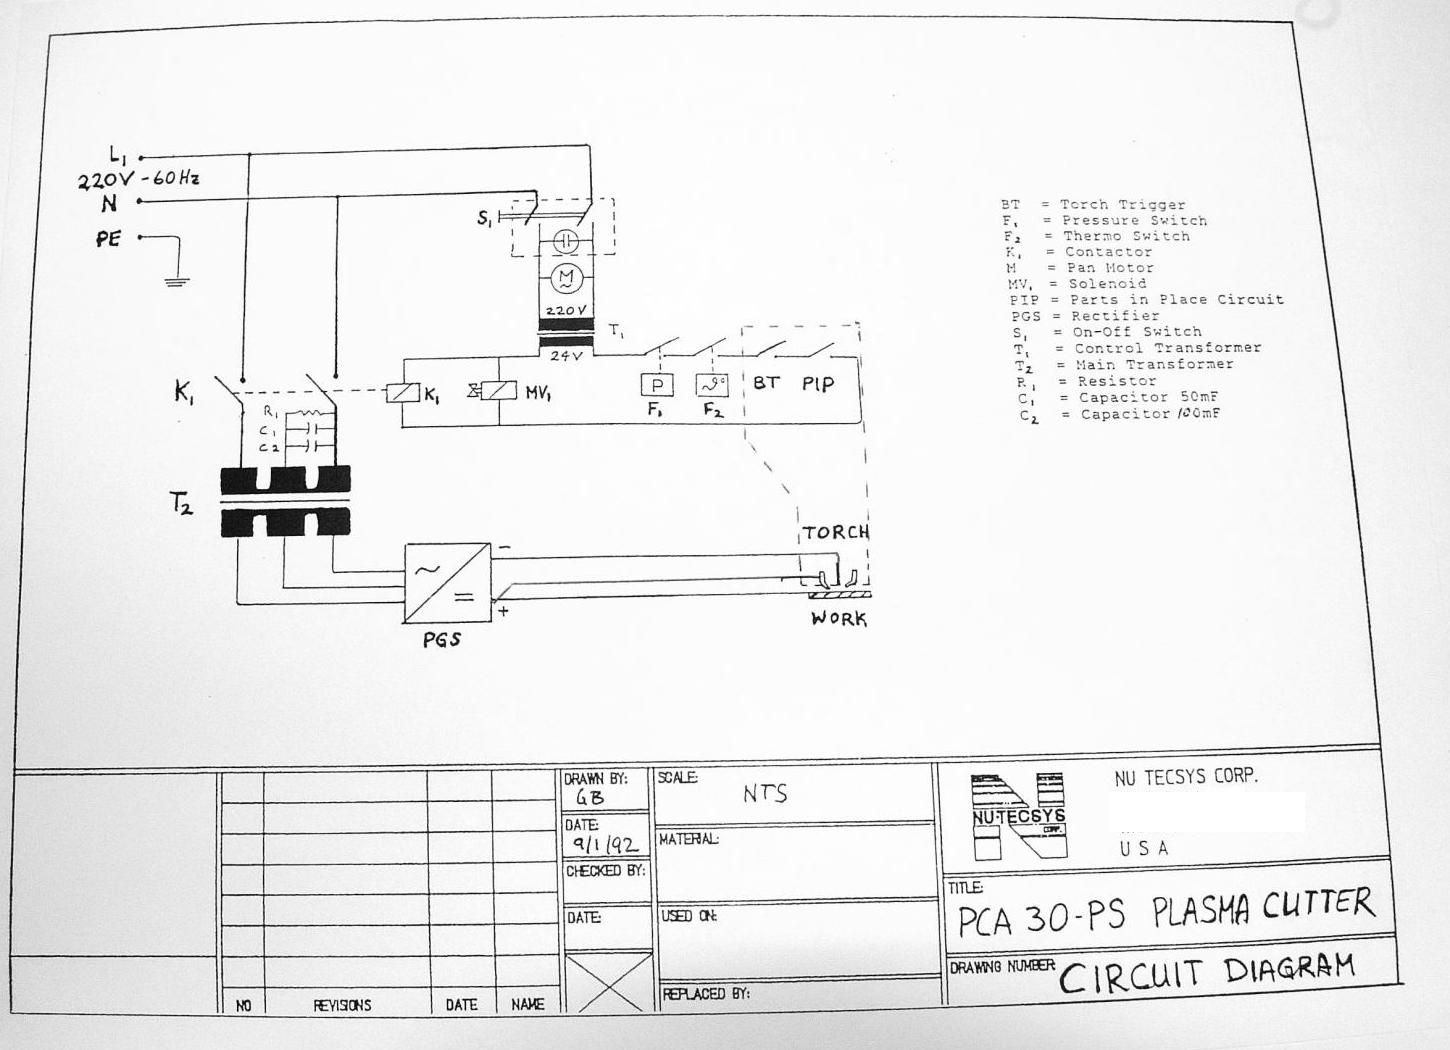 Lightning-Saw® By Nu-tec Systems. on lincoln arc welder outlet wiring diagram, plasma cutter circuit system, plasma cutter wiring schematic, force 2 insulation machine wiring diagram, plasma cutter accessories, plasma cutter power supply, plasma cnc wiring-diagram, lincoln welder engine wiring diagram, mig welder diagram, plasma cutter electrical diagram, plasma cutter parts, plasma cutter block diagram, cnc machine diagram, motor wiring diagram, plasma cutter wiring diagram, lincoln welder starter switch wiring diagram, seam welder diagram, 2001 chevy silverado wiring diagram, lincoln ac dc welder wiring diagram, lincoln ac-225 welder wiring diagram,